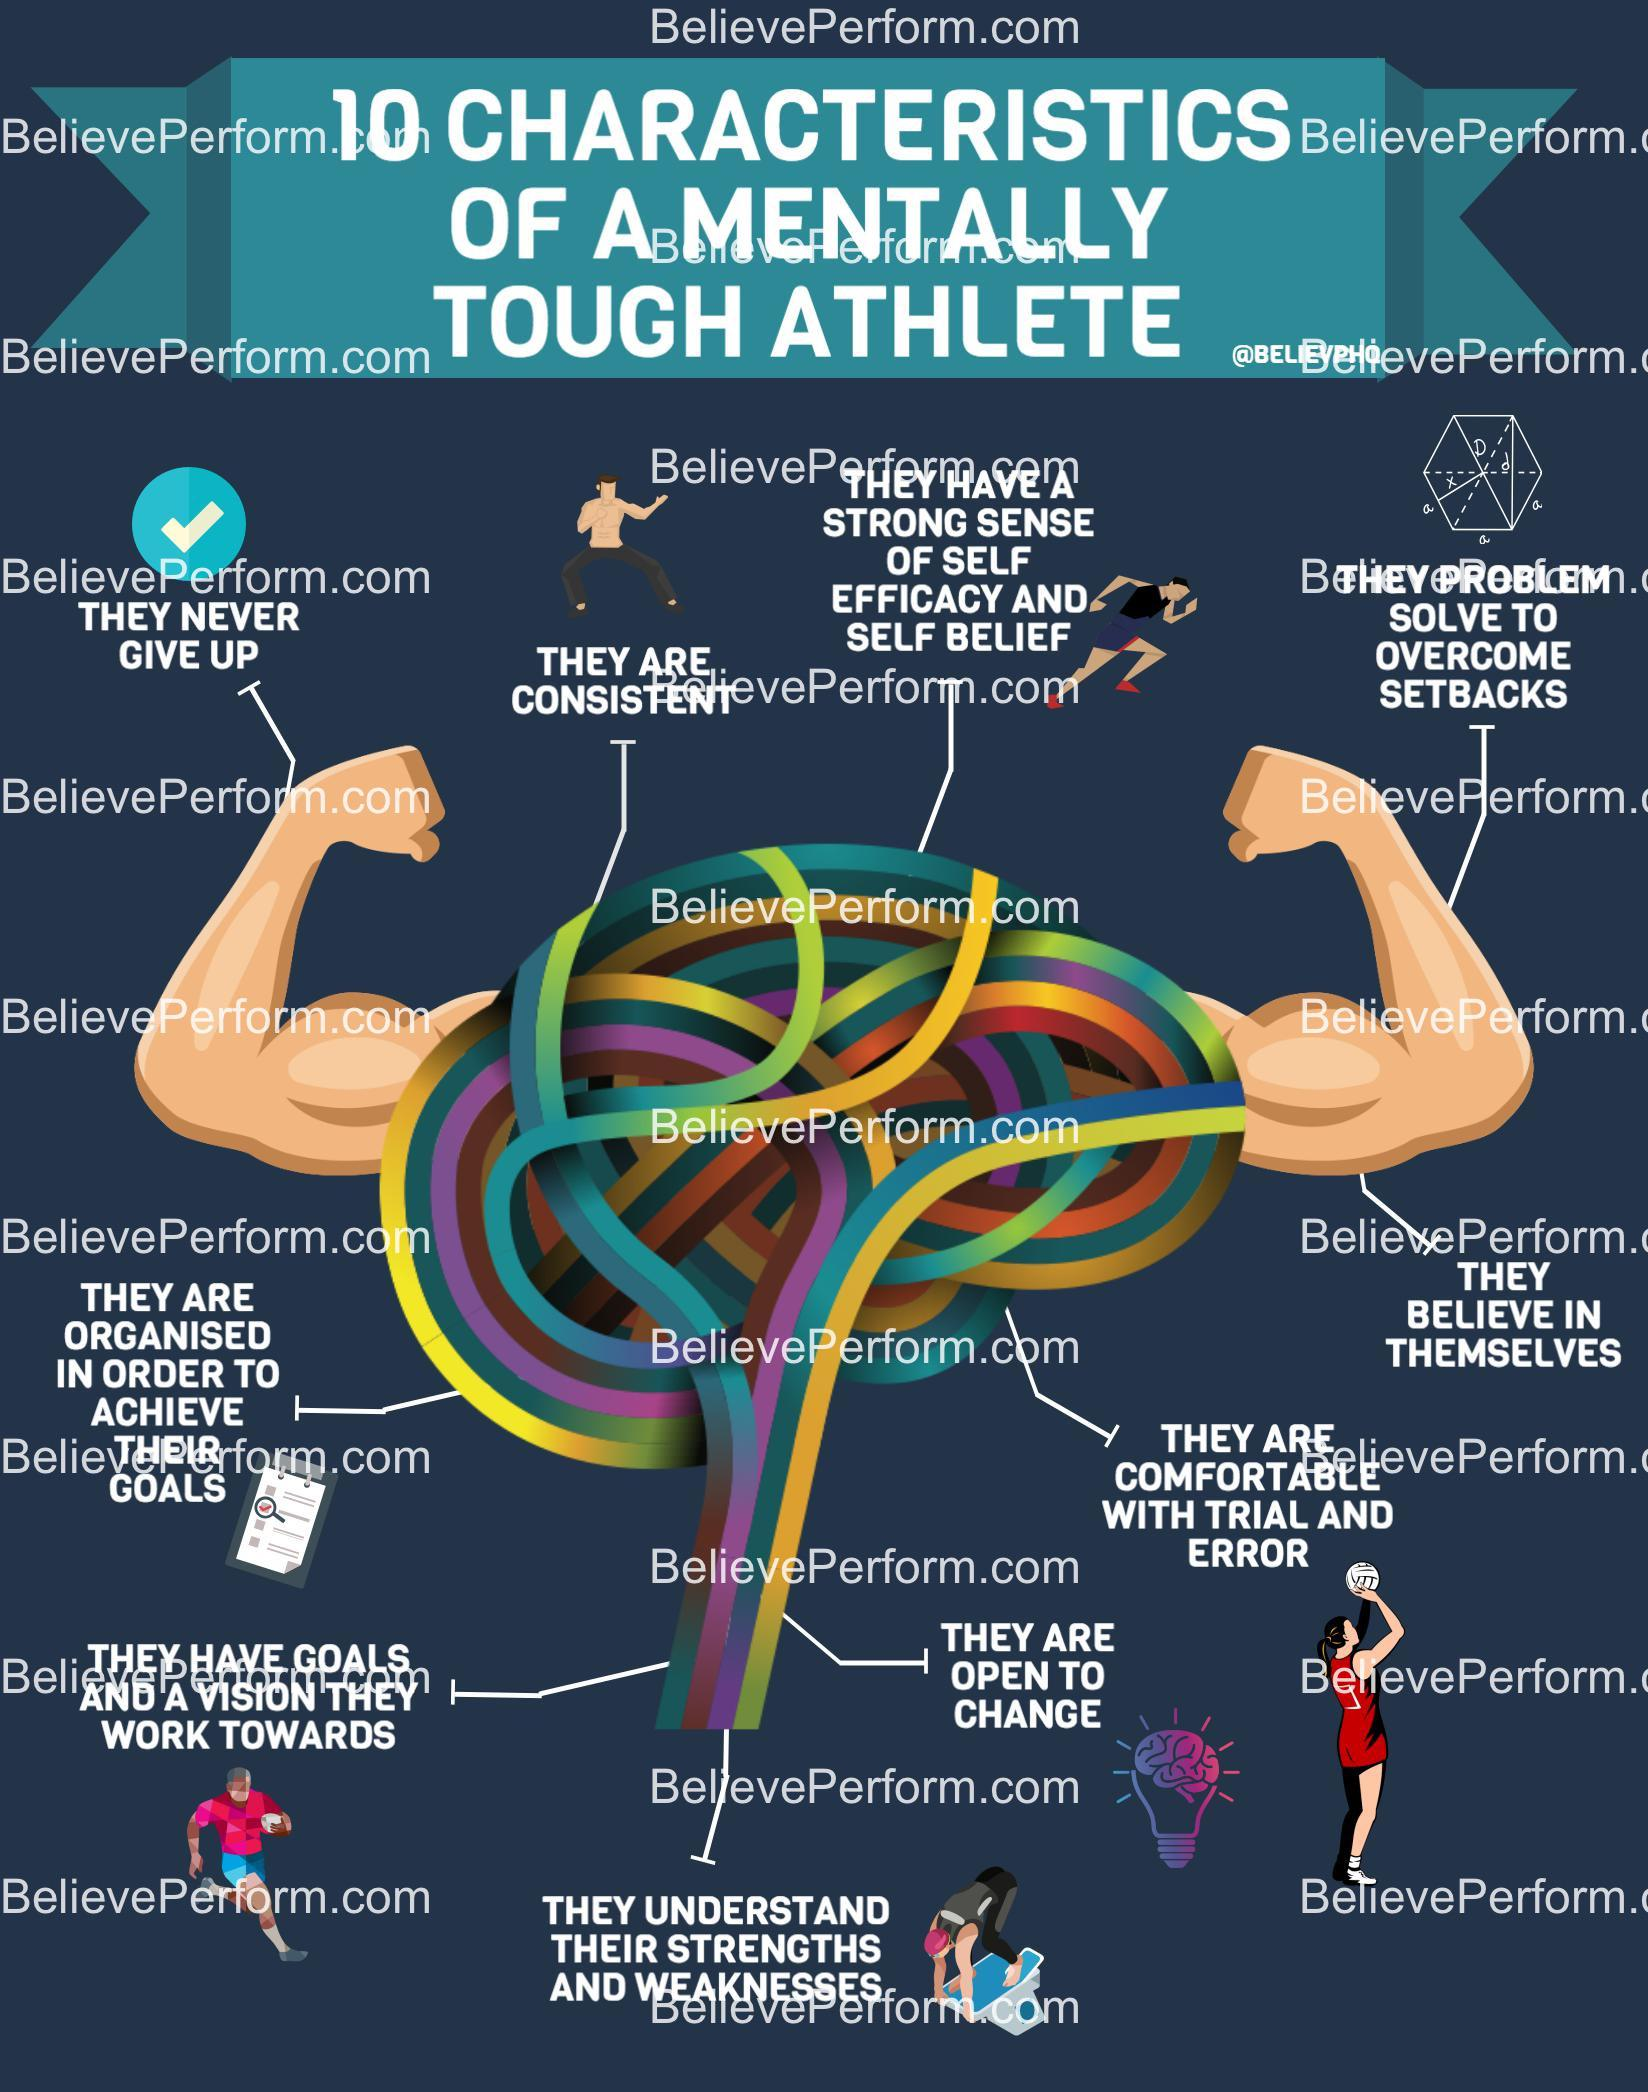 10 characteristics of a mentally tough athlete